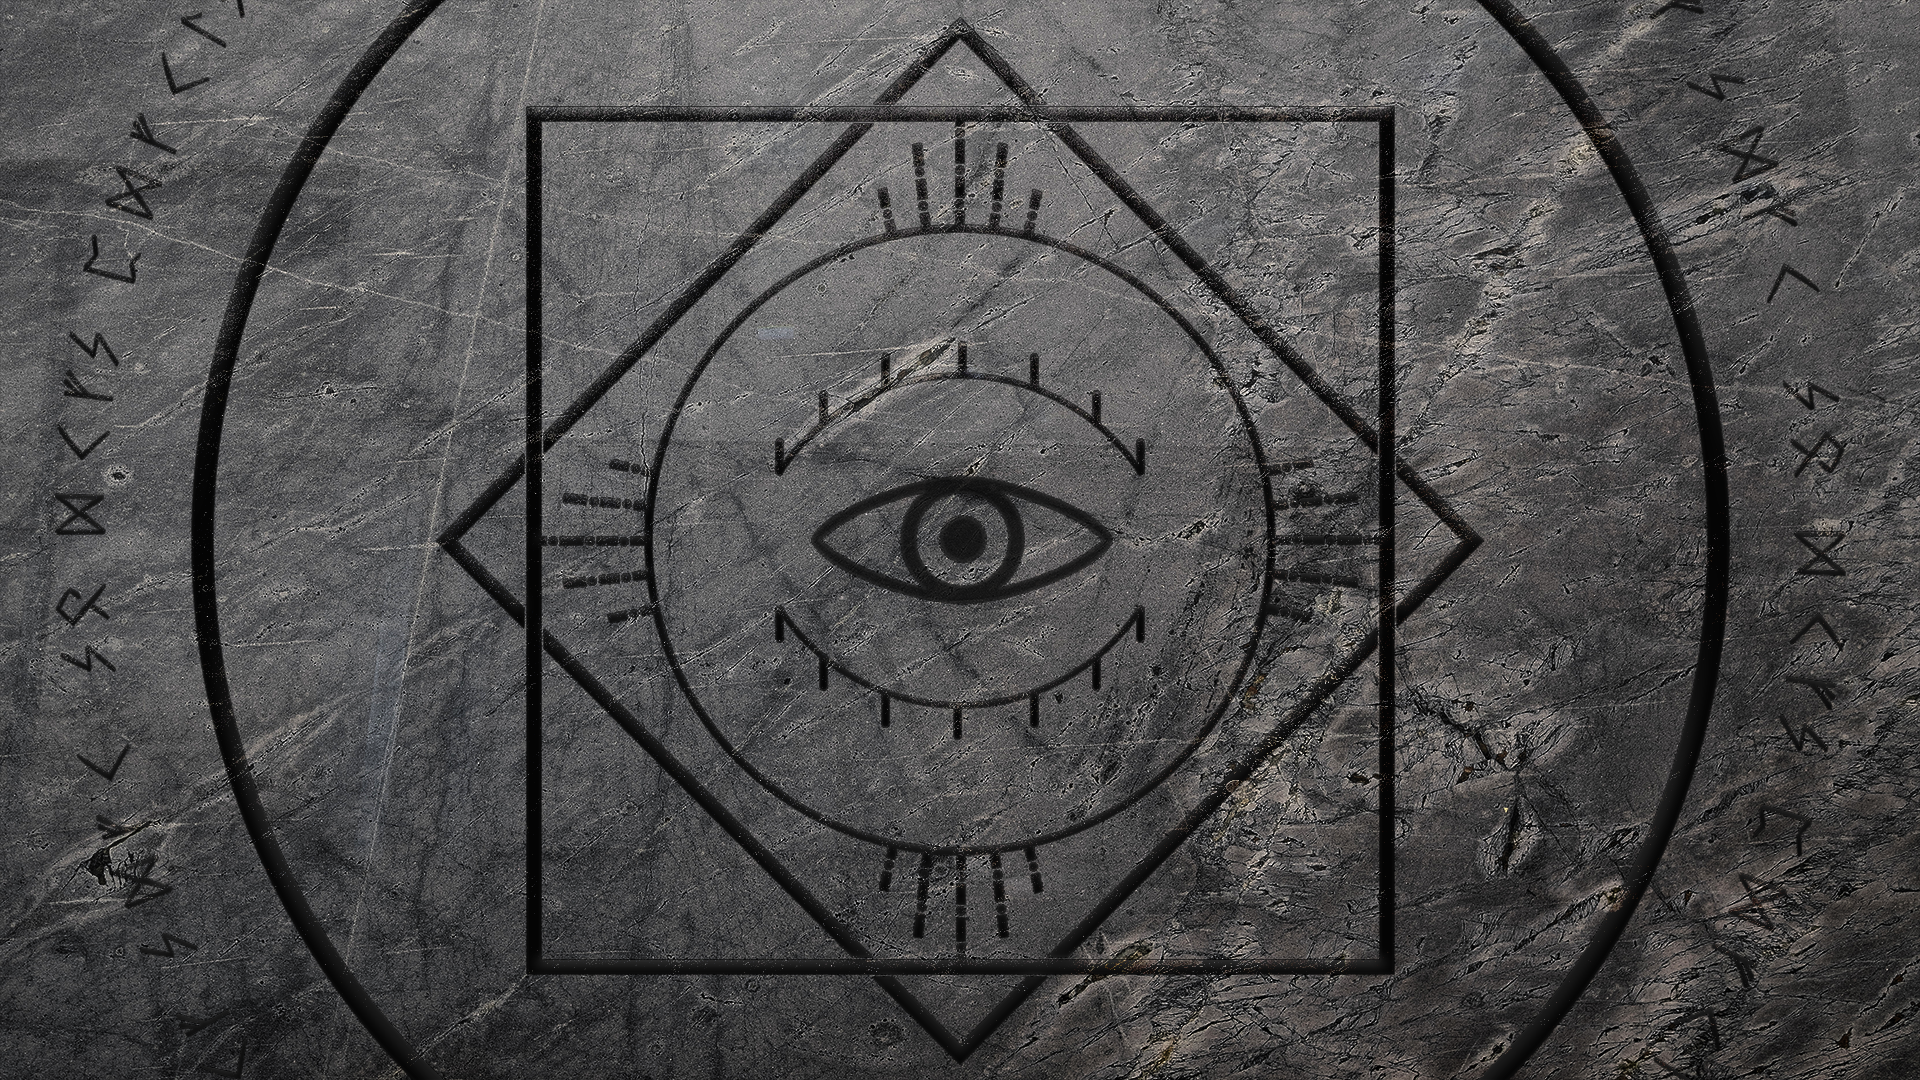 General 1920x1080 Illuminati runes viking circle square eyeball line art stone dark gray texture textured